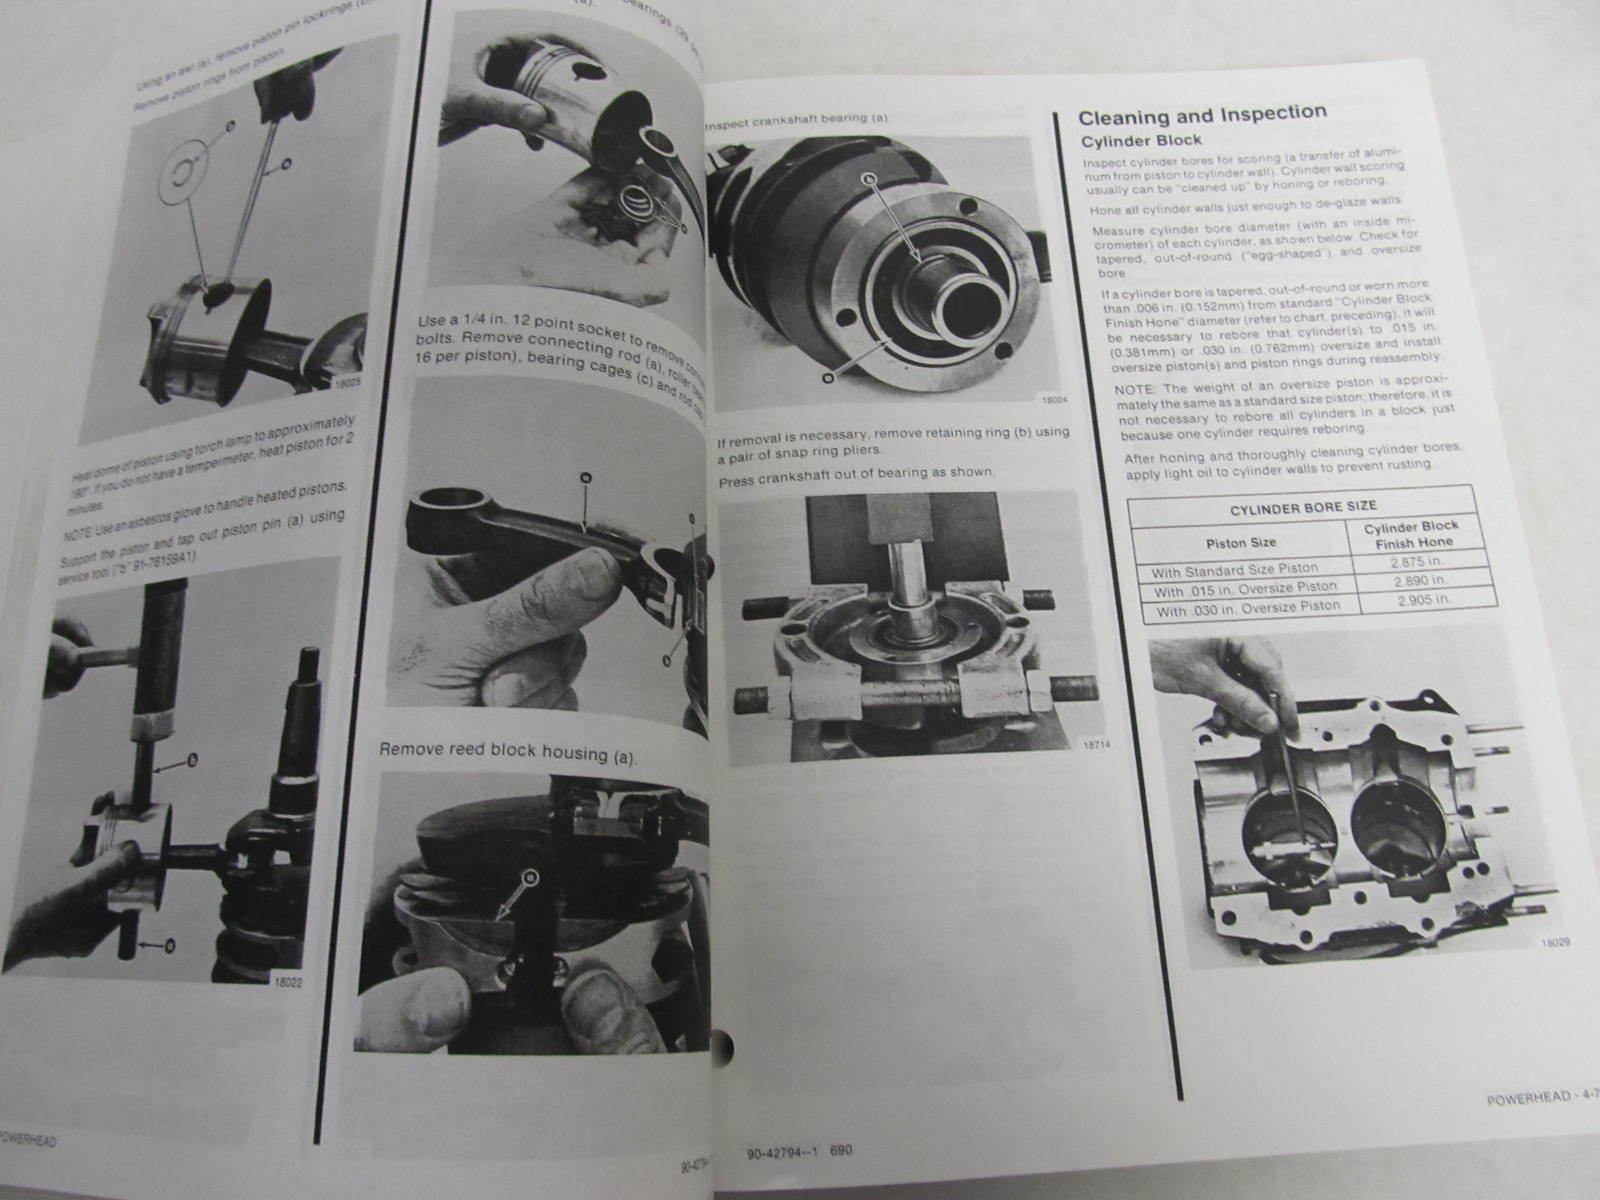 90 42794 1 690 mercury outboard service manual 35 40 hp 2 35 HP Mercury Parts 1986 mercury 35 hp outboard service manual